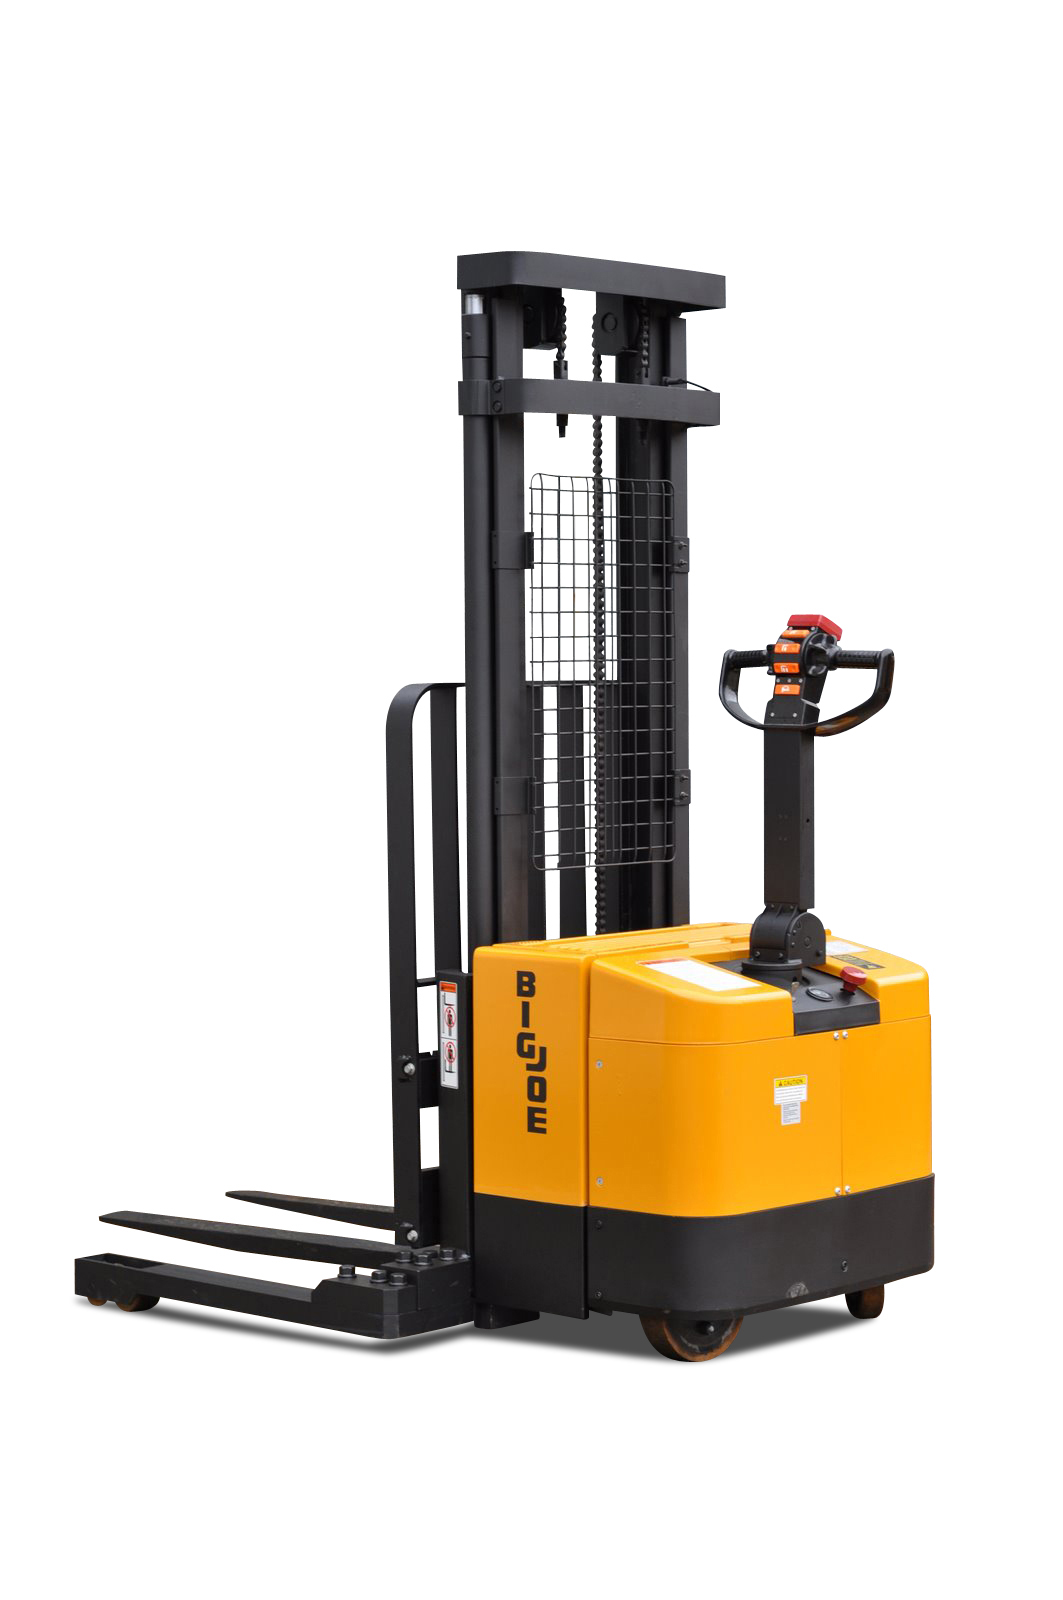 Big Joe Launches New Basic Series Of Forklifts: motorized forklift